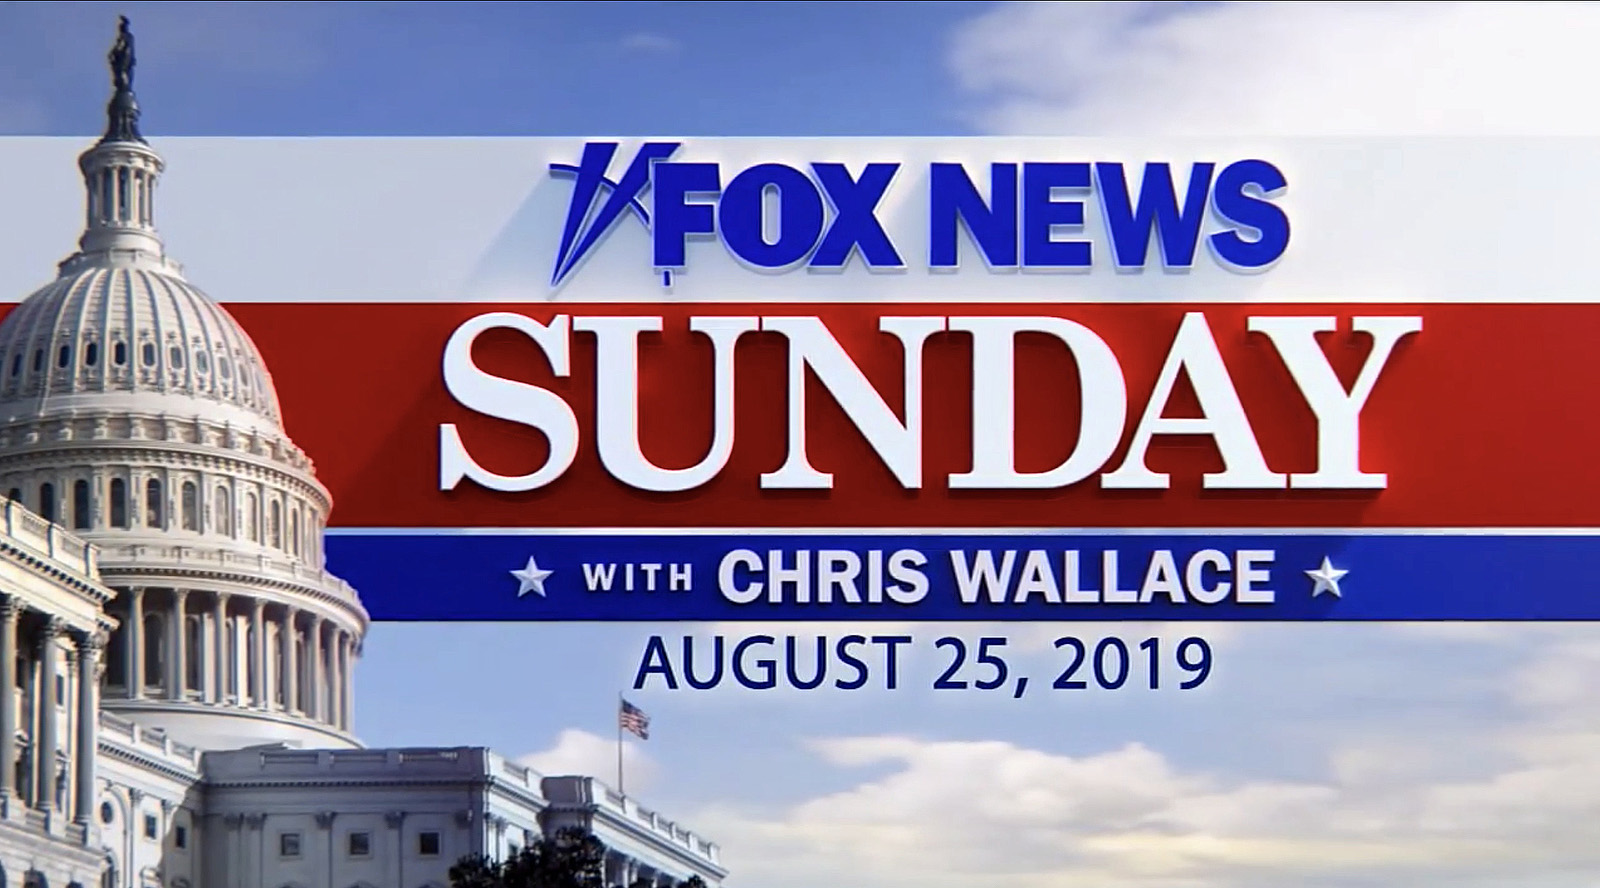 NCS_Fox-News-Sunday_2019_Motion-Graphics_009